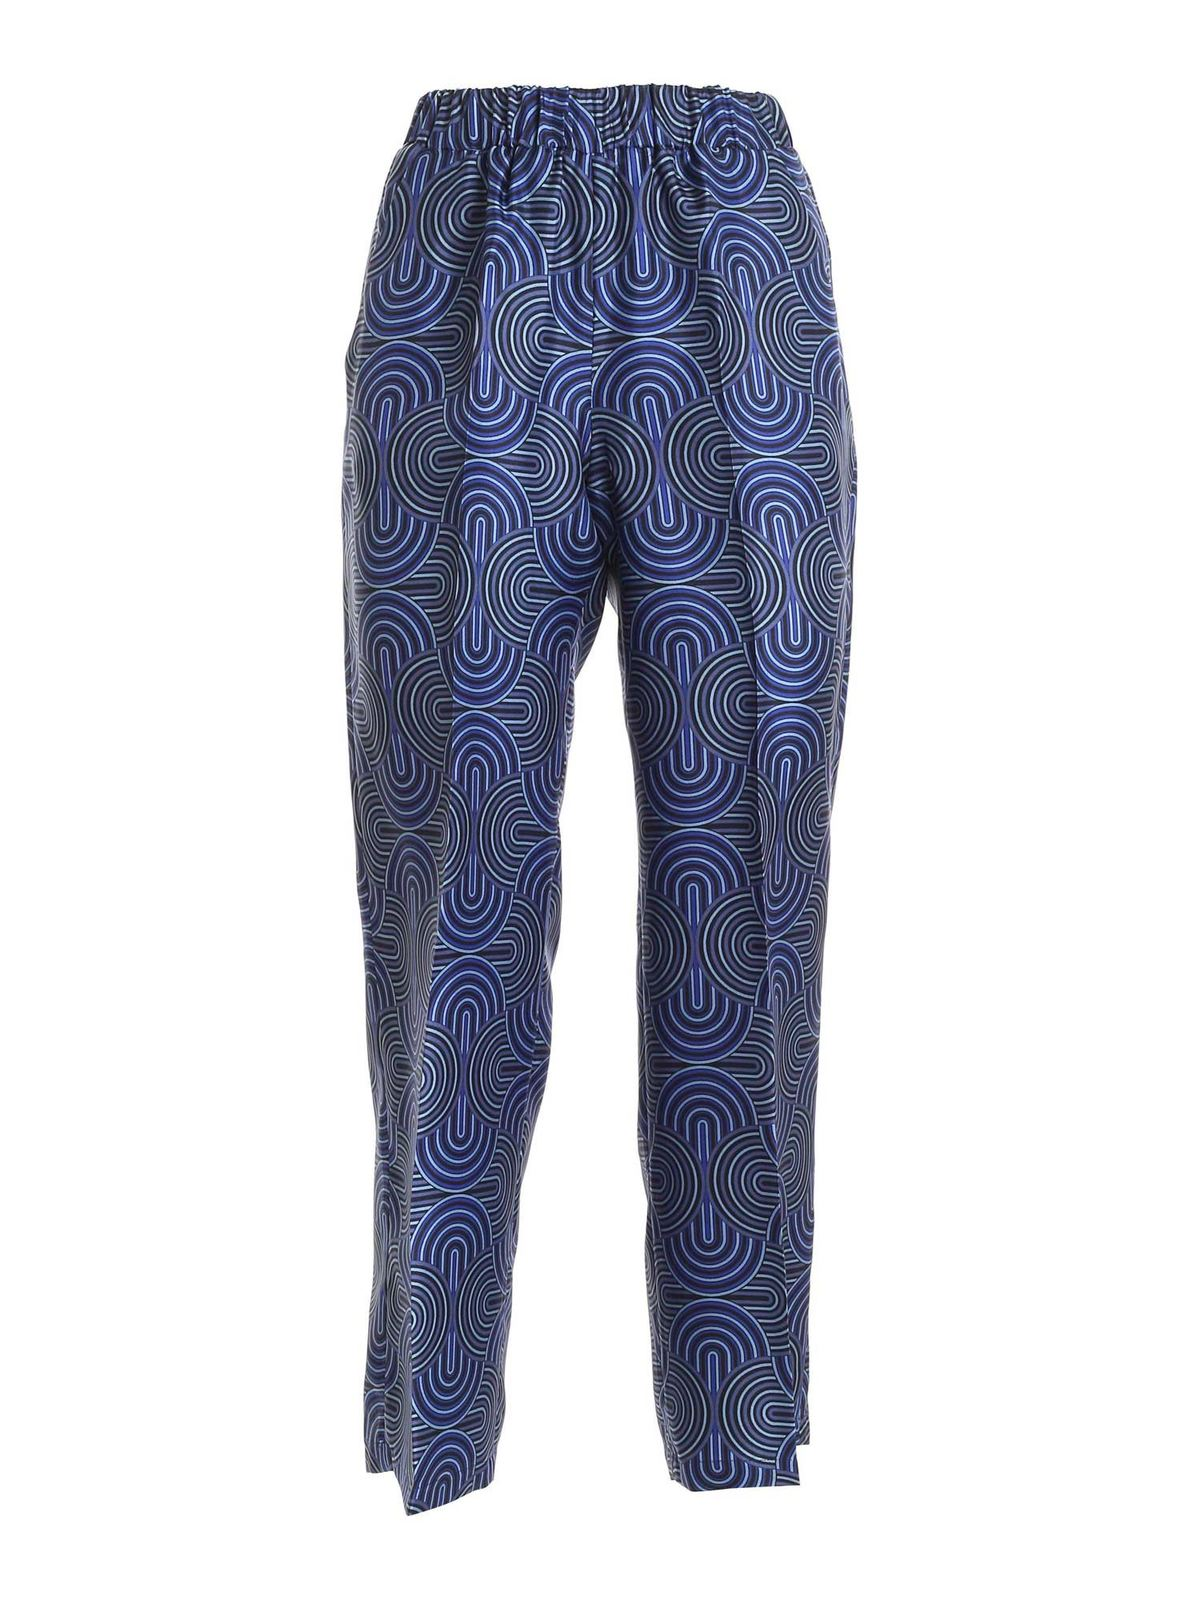 True Royal Silks DAKAR TWILL SILK PANTS IN GEOMETRIC PRINT